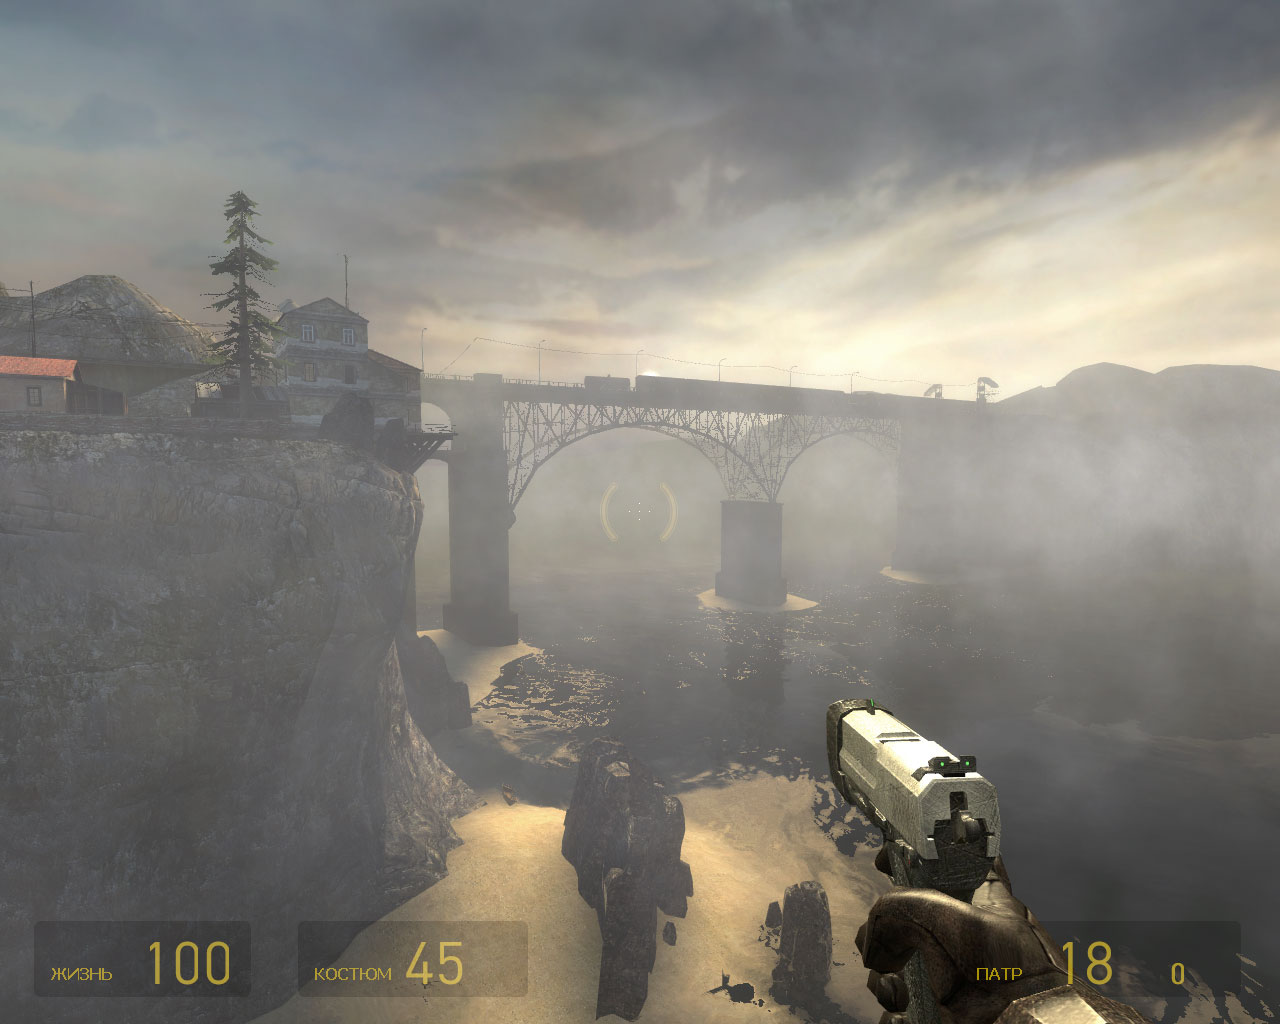 View the mod db half-life 2: episode one image screenshot half life 2 episode one, screenshot, image, screenshots